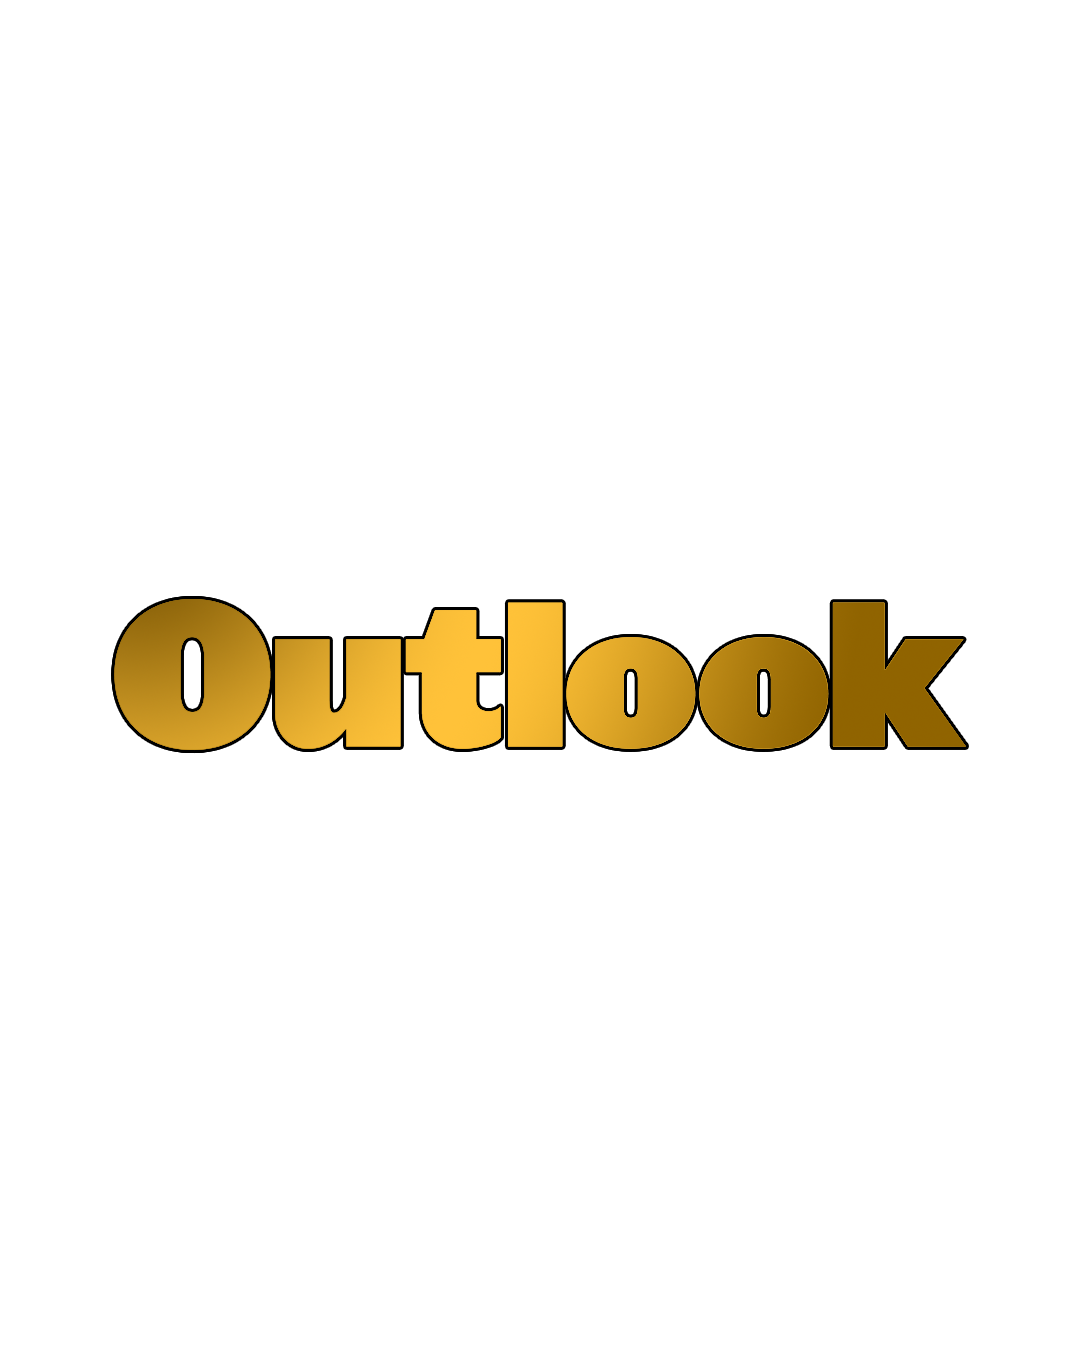 outlook (1)